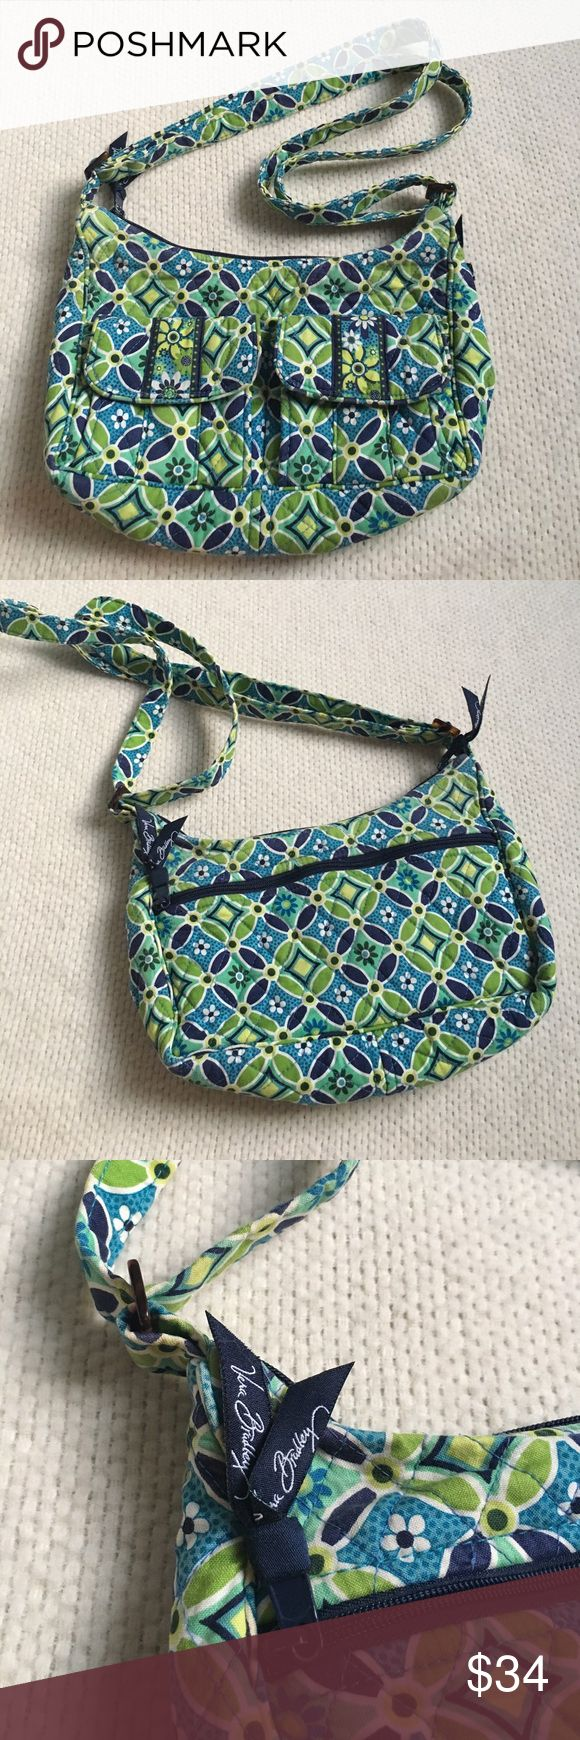 Vera Bradley Handbag with Adjustable Straps Vera Bradley Handbag with Adjustable Straps. Features a zip closure to the main pocket, an outside zip pocket, two outside pockets with snap closures, and two pockets on the inside. Excellent condition. Vera Bradley Bags Shoulder Bags